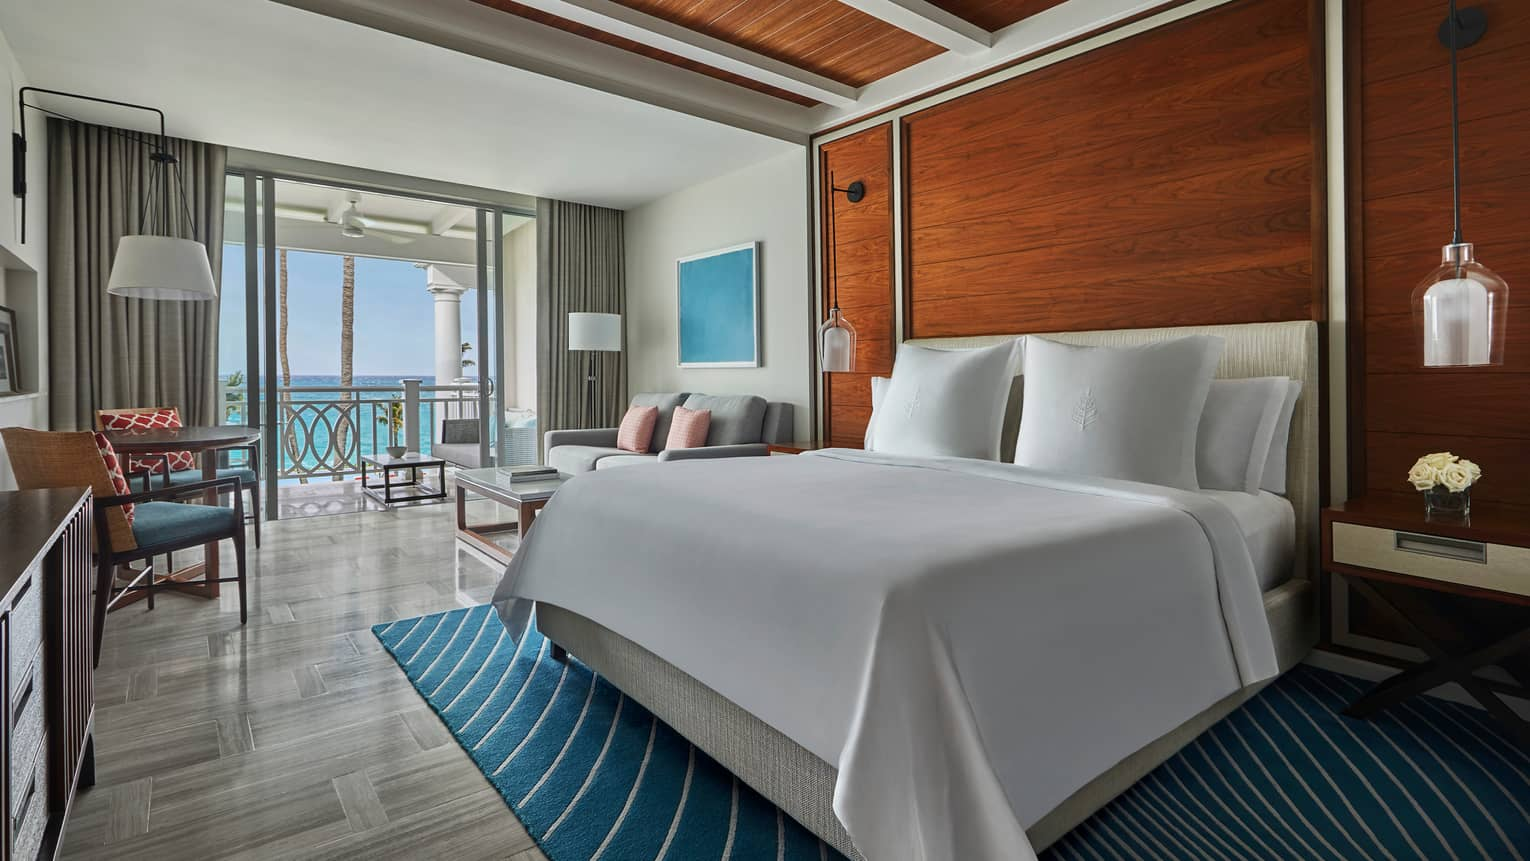 Ocean-View Room bed against wood accent wall on blue area rug, open glass wall to patio with ocean views